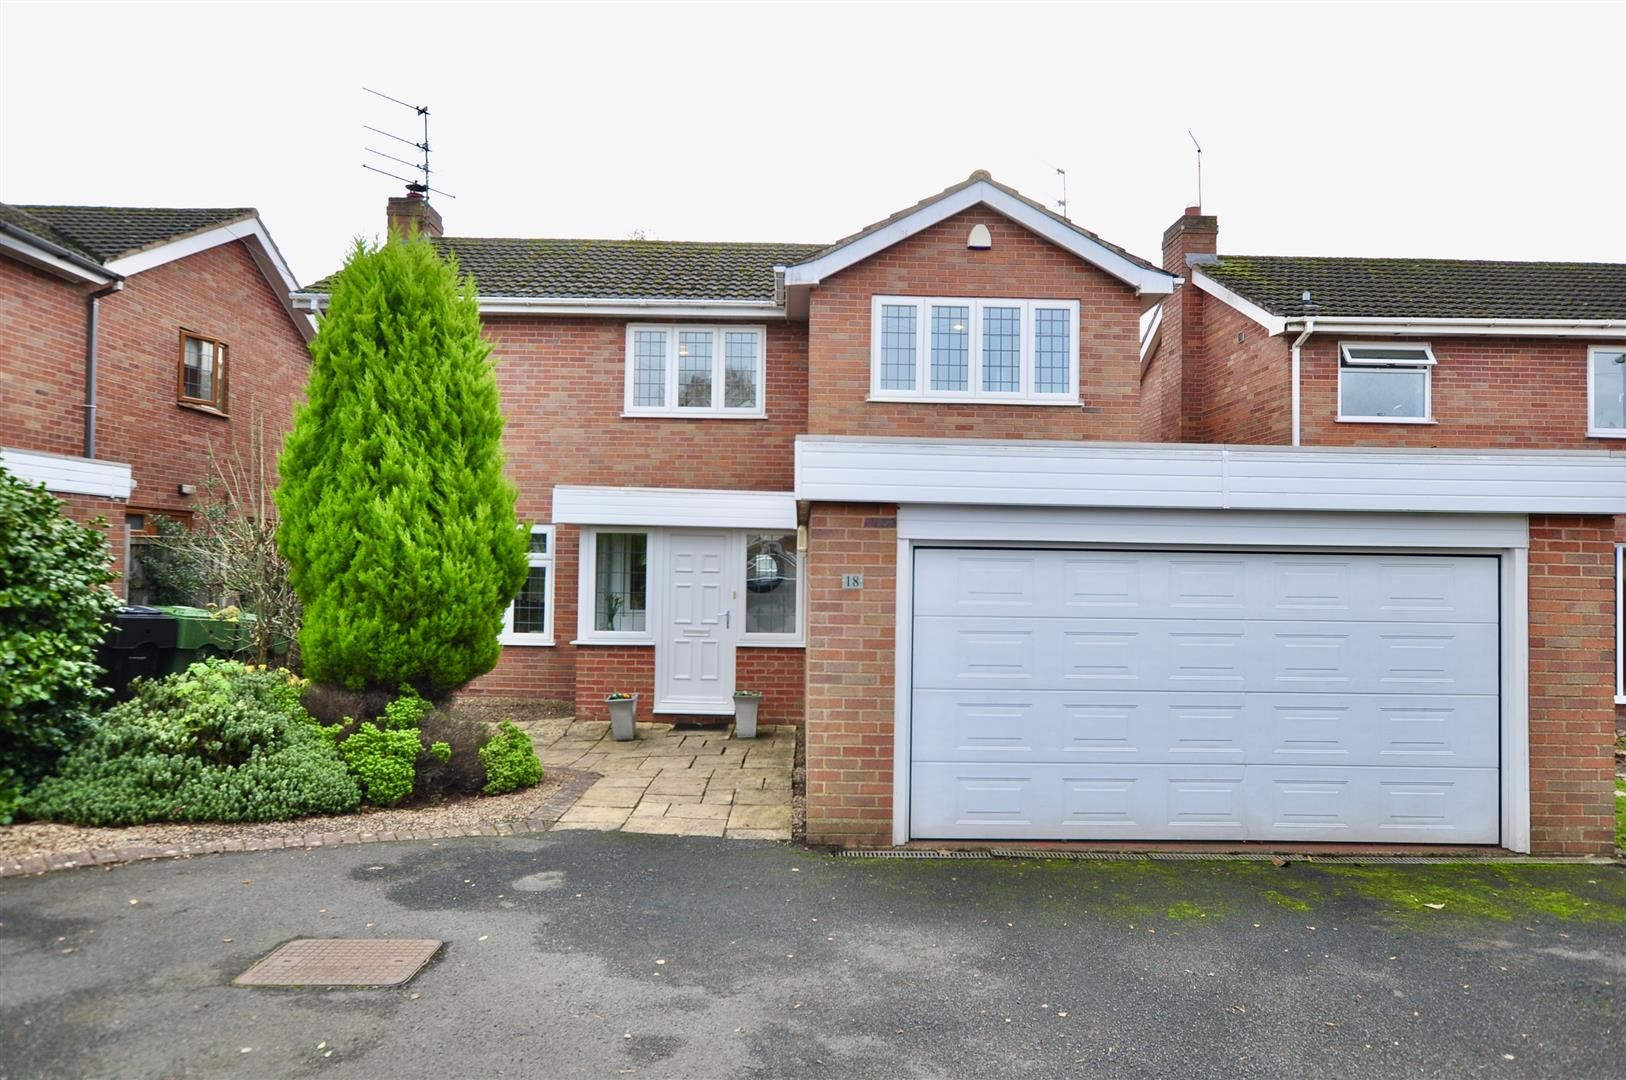 4 bed house for sale in Hagley  - Property Image 28